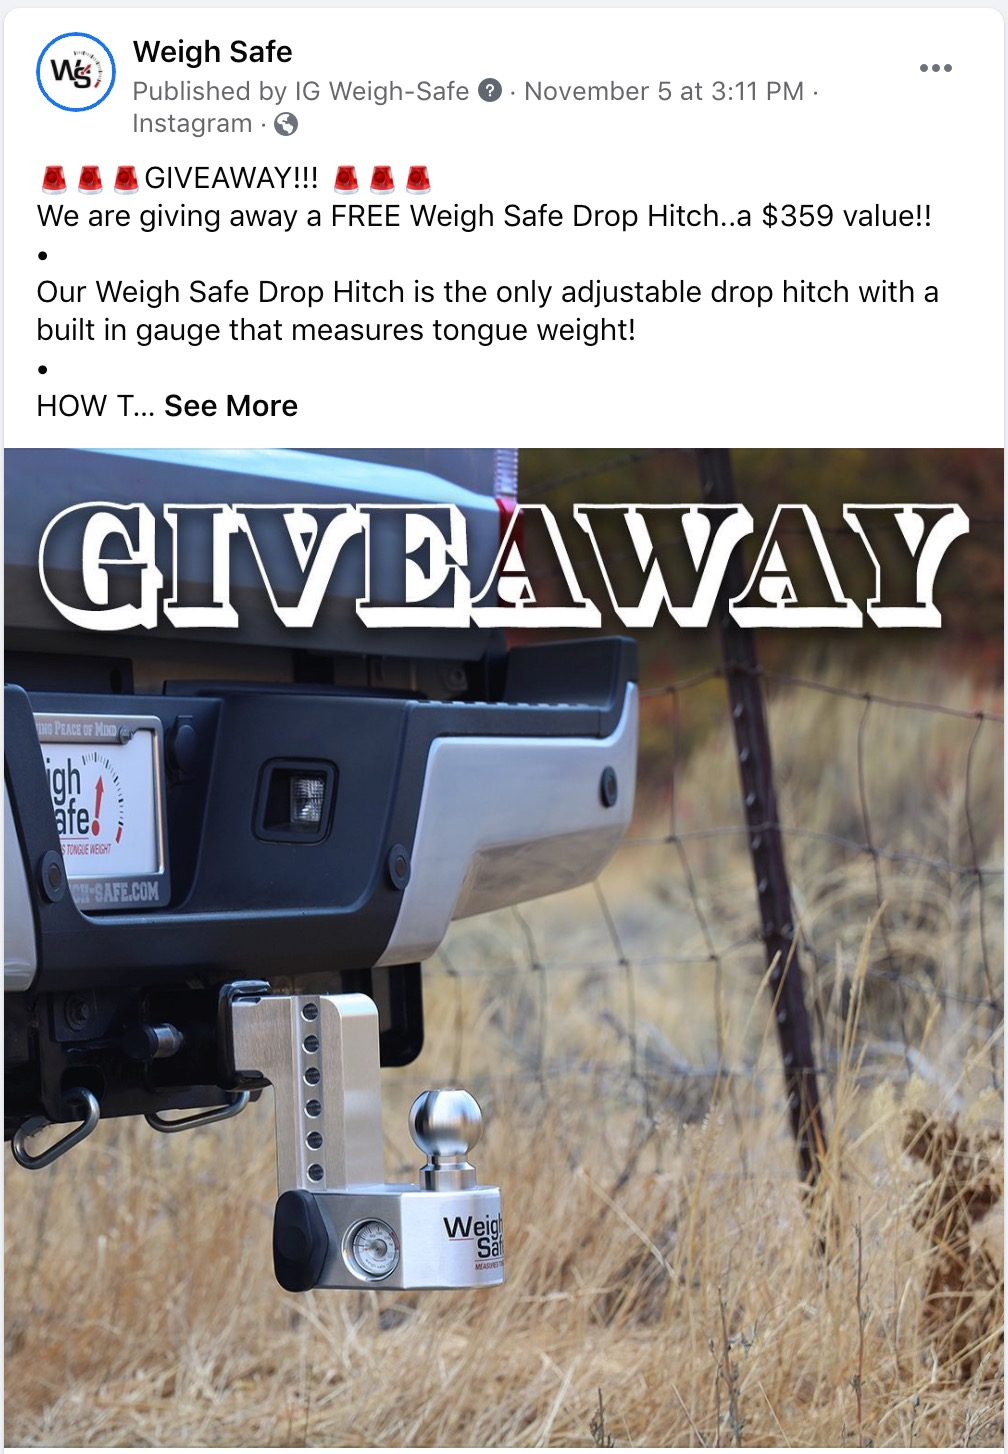 """Weigh Safe Instagram Post - """"Giveaway!! We are giving away a FREE Weigh Safe Drop Hitch.. a $359 value!! Our Weigh Safe Drop Hitch is the only adjustable drop hitch with a built in gauge that measures tongue weight! HOW T... See More"""""""